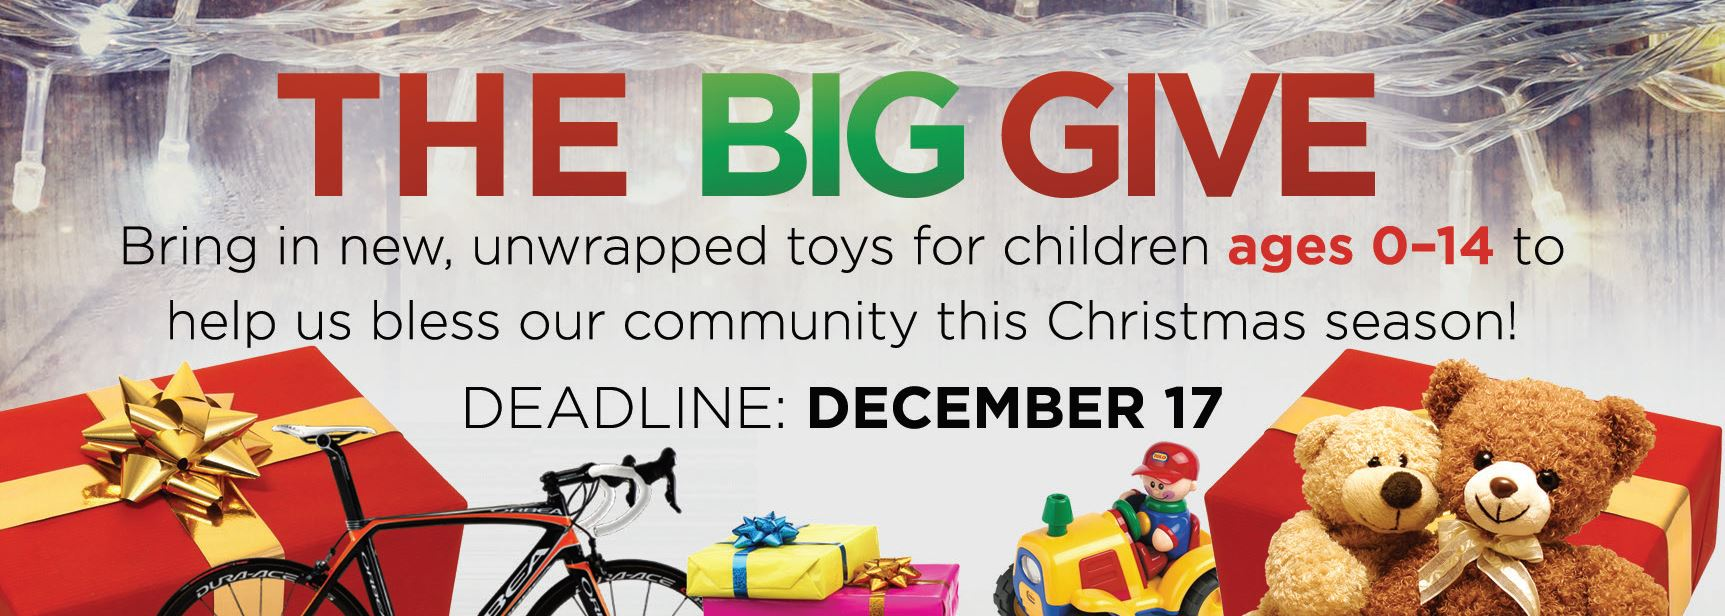 The BIG GIVE | Bring in new, unwrapped toys for children ages 0 - 14 to help us bless our community this Christmas season! | Deadline: December 17!